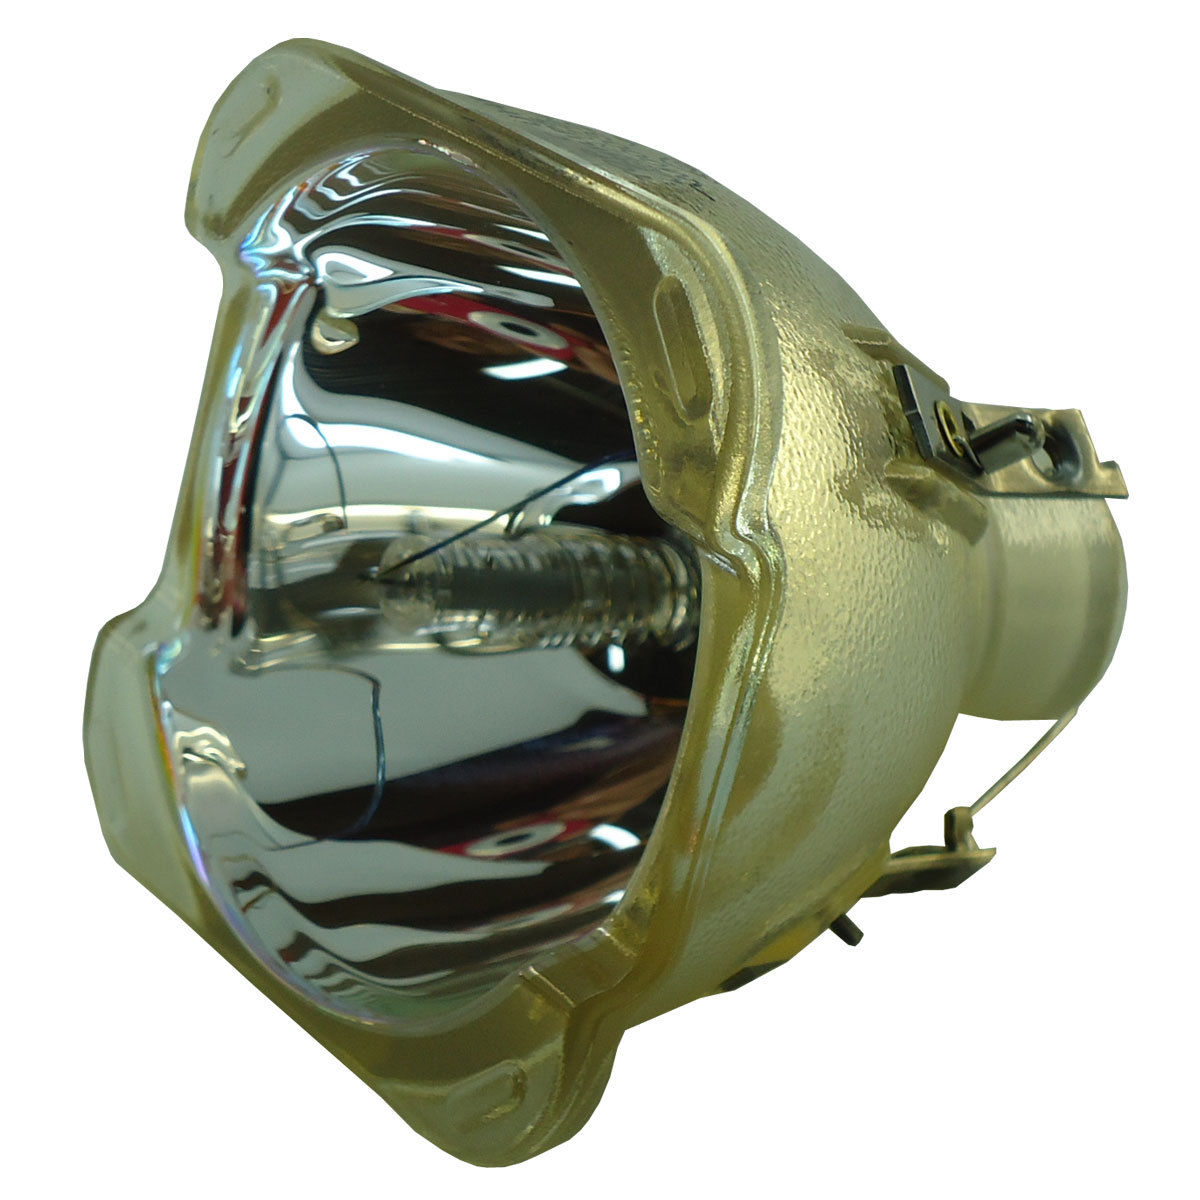 Compatible Bare Bulb 5J.J2D05.011 for BenQ SP920P Projector Lamp Bulb without housing free shipping free shipping compatible replacement bare projector lamp 5j j2d05 011 for benq sp920p